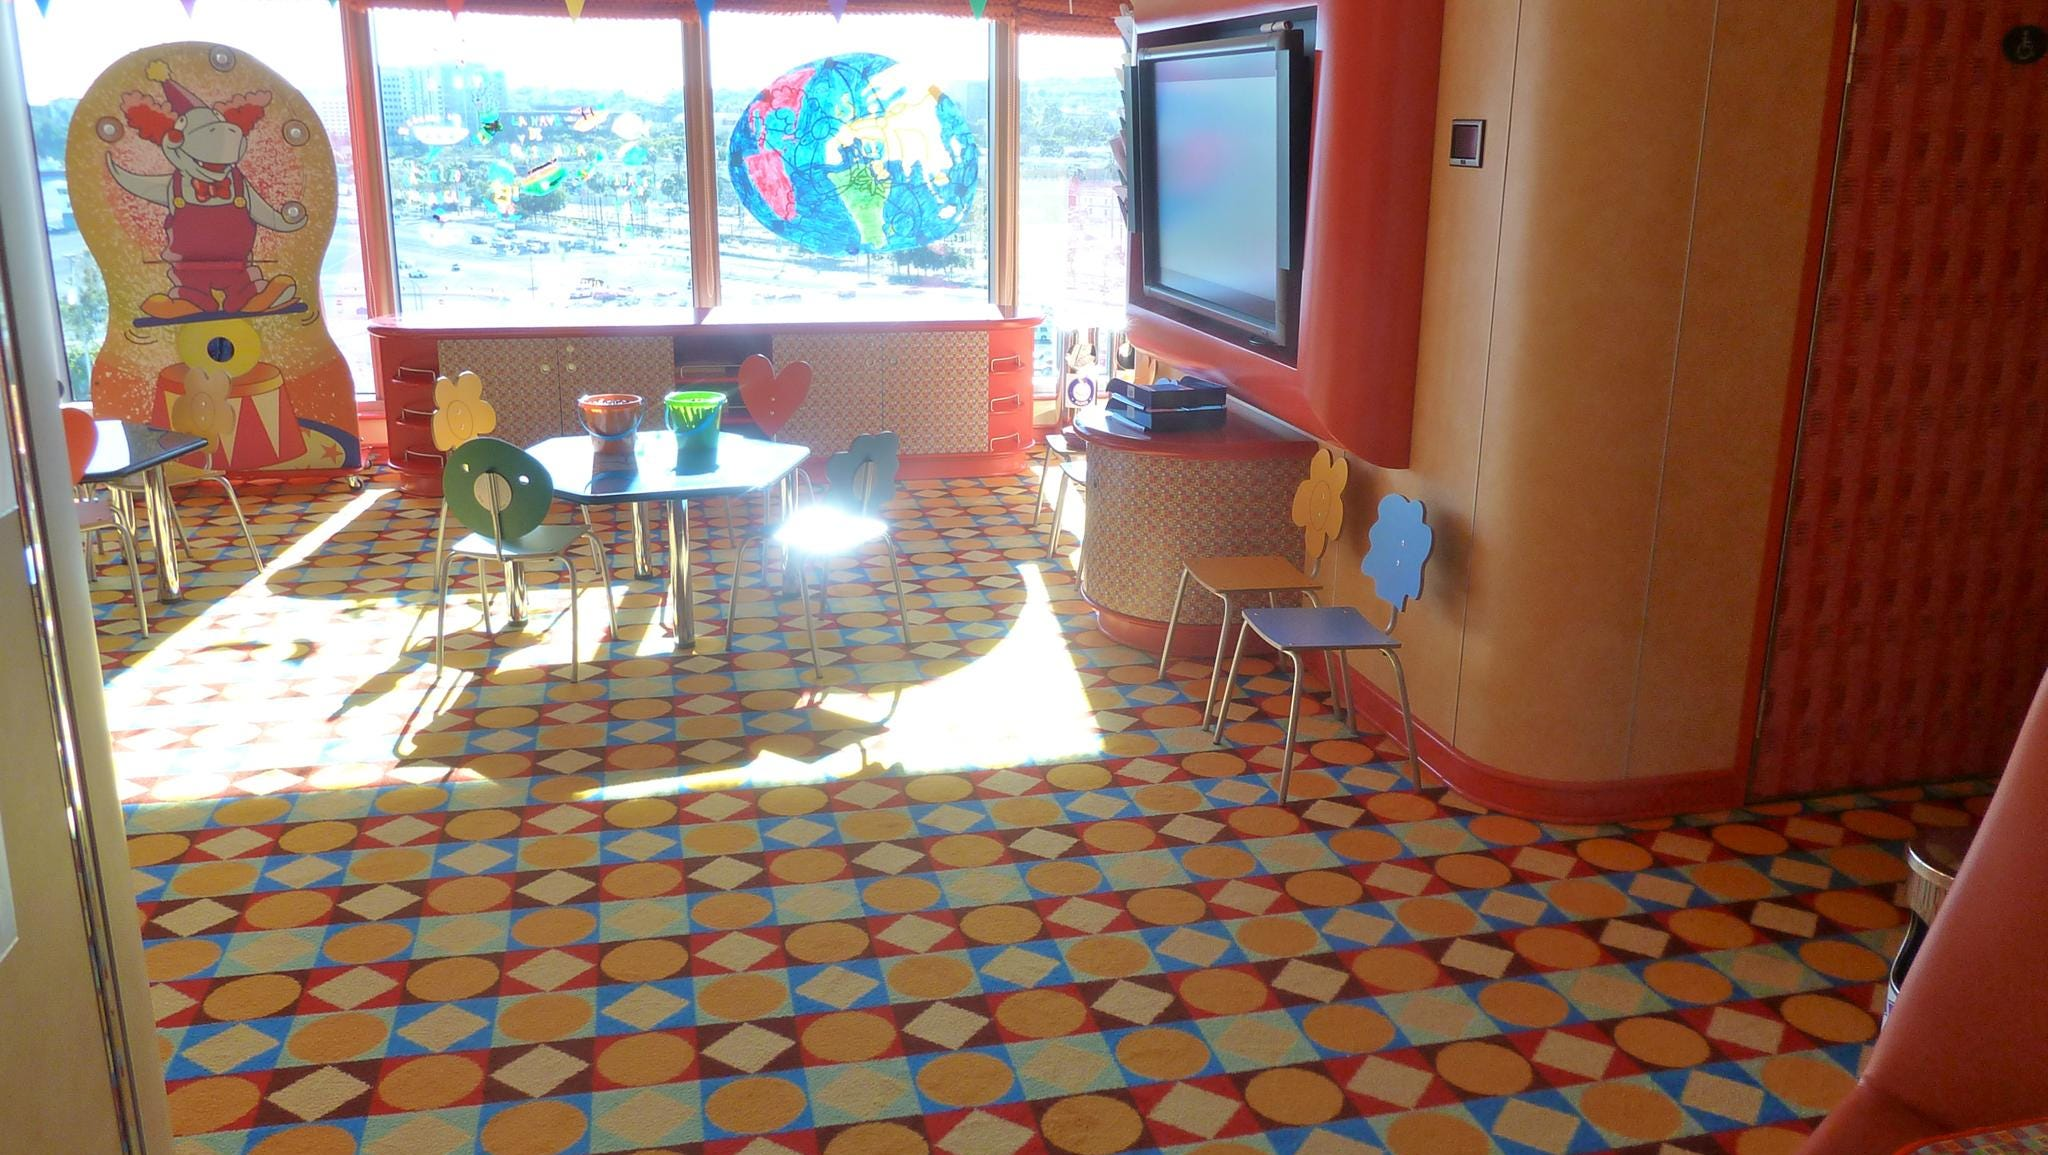 Club Squok is the children's playroom on port Magnolia Deck.